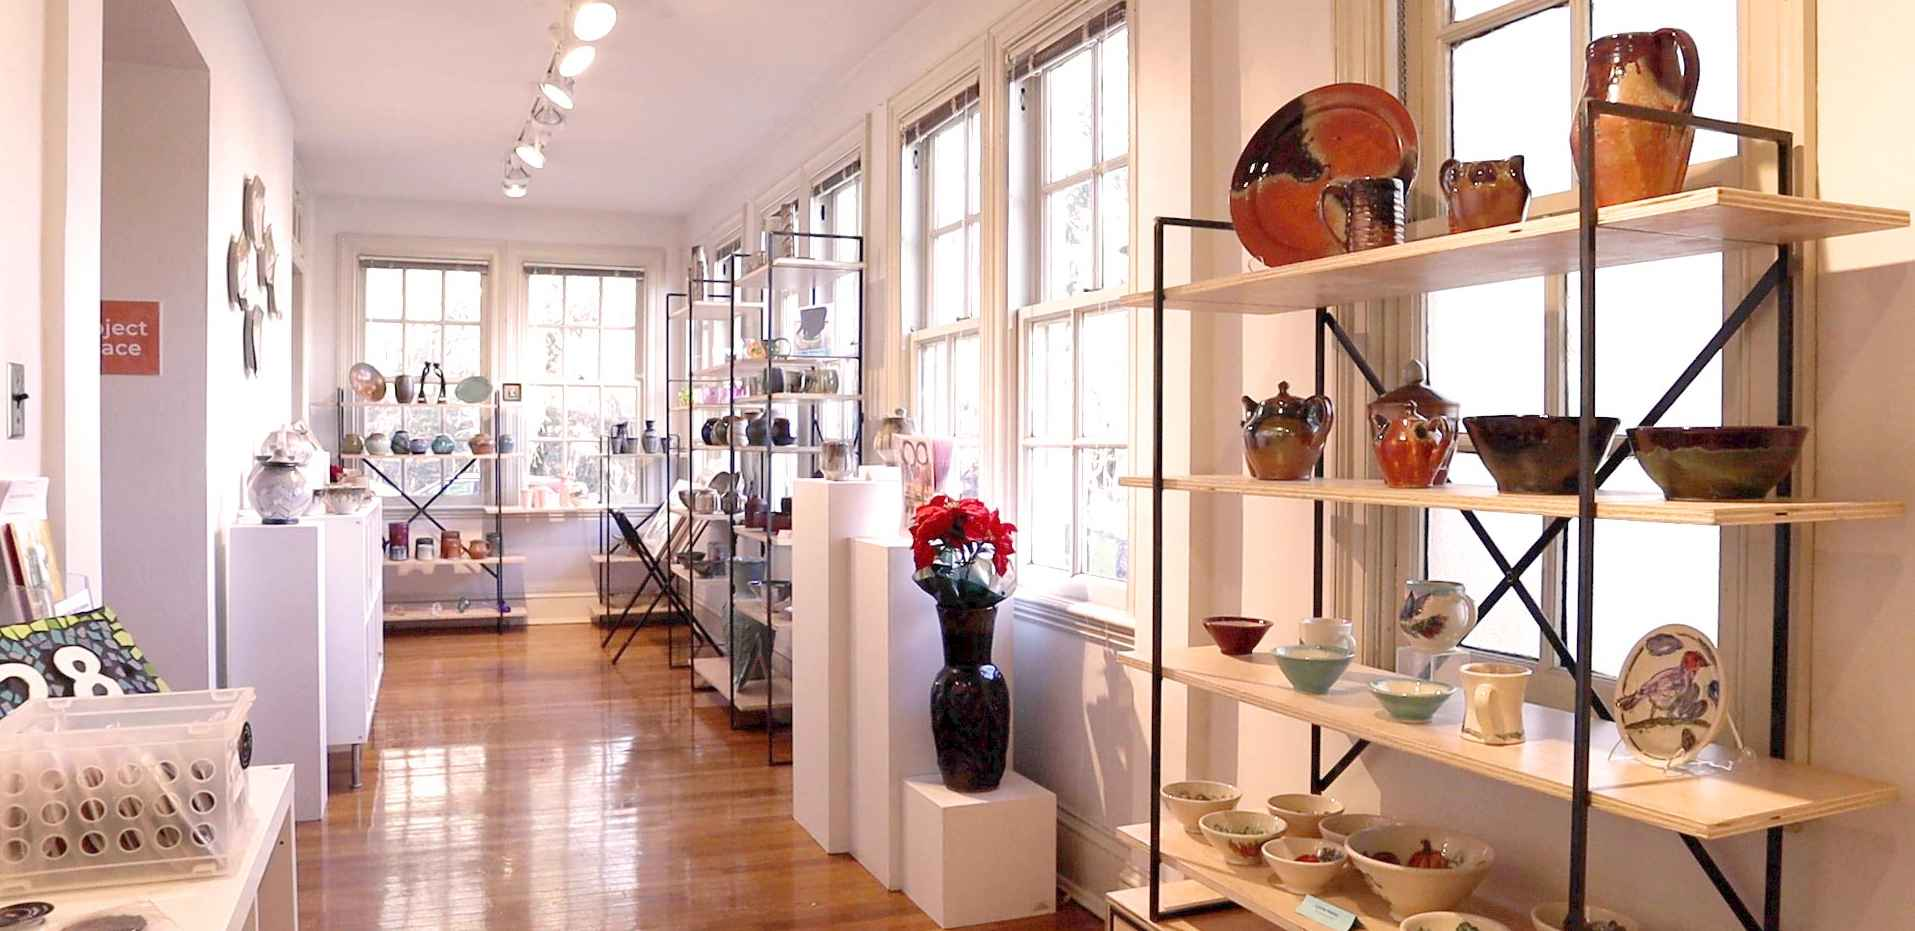 image of the shop interior